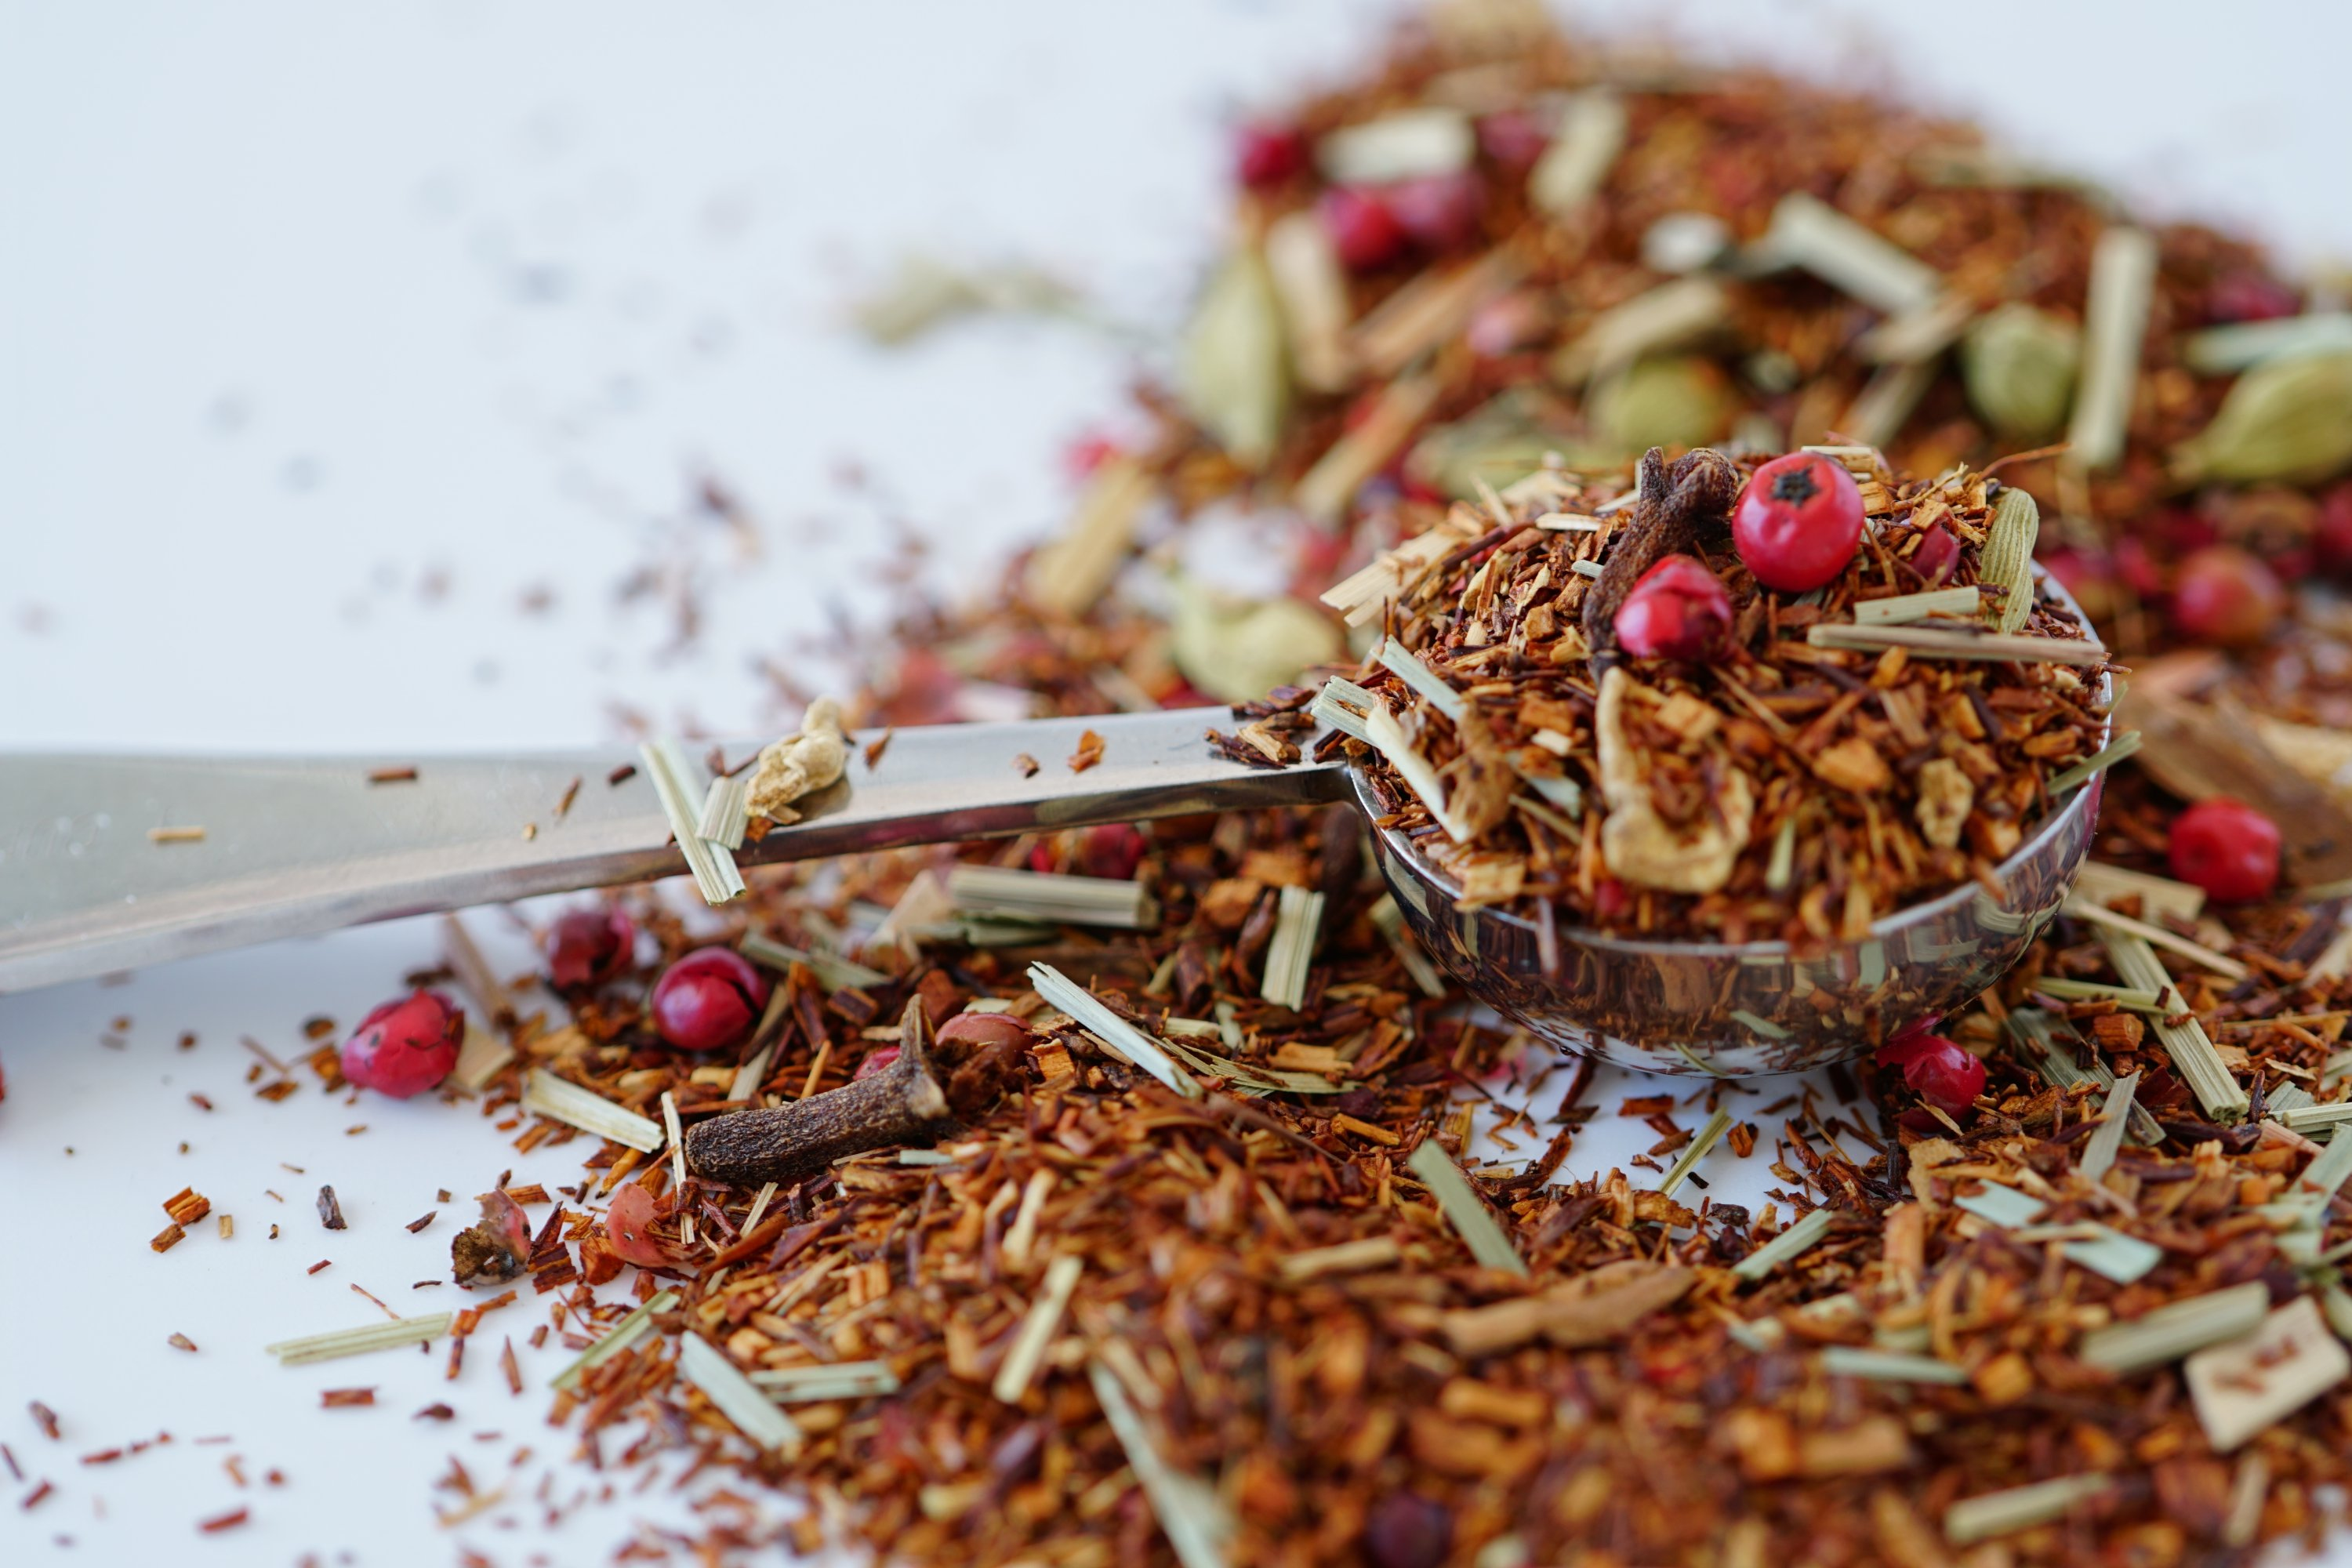 Rooibos (pronounced